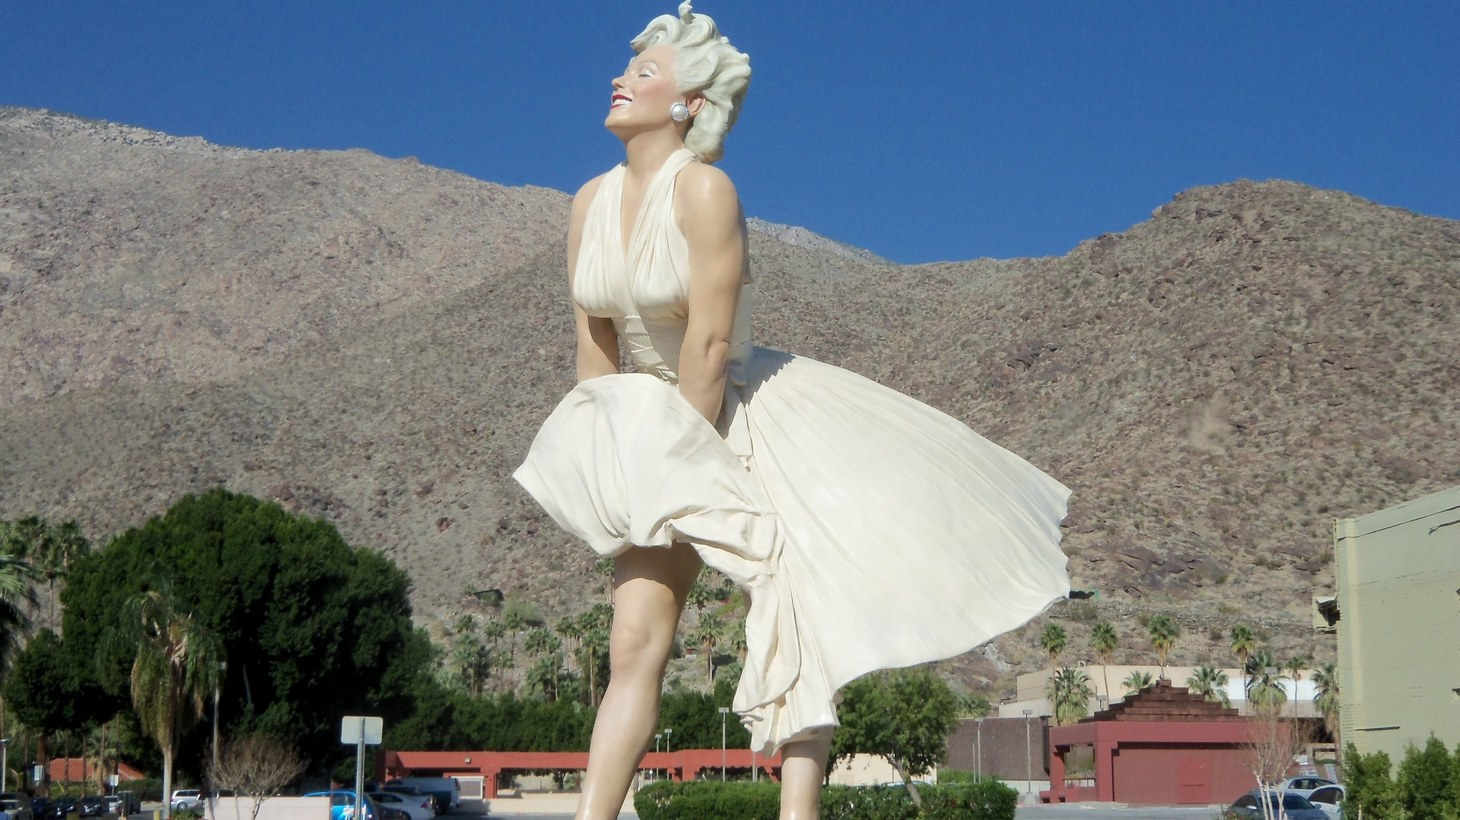 """When """"Forever Marilyn"""" was last in Palm Springs, the statue had a primo downtown location at the intersection of Palm Canyon Drive and Tahquitz Canyon Way. Since departing in 2014, the once open lot that was unofficially dubbed """"the Marilyn park"""" has been turned into the Kimpton Rowan Hotel."""